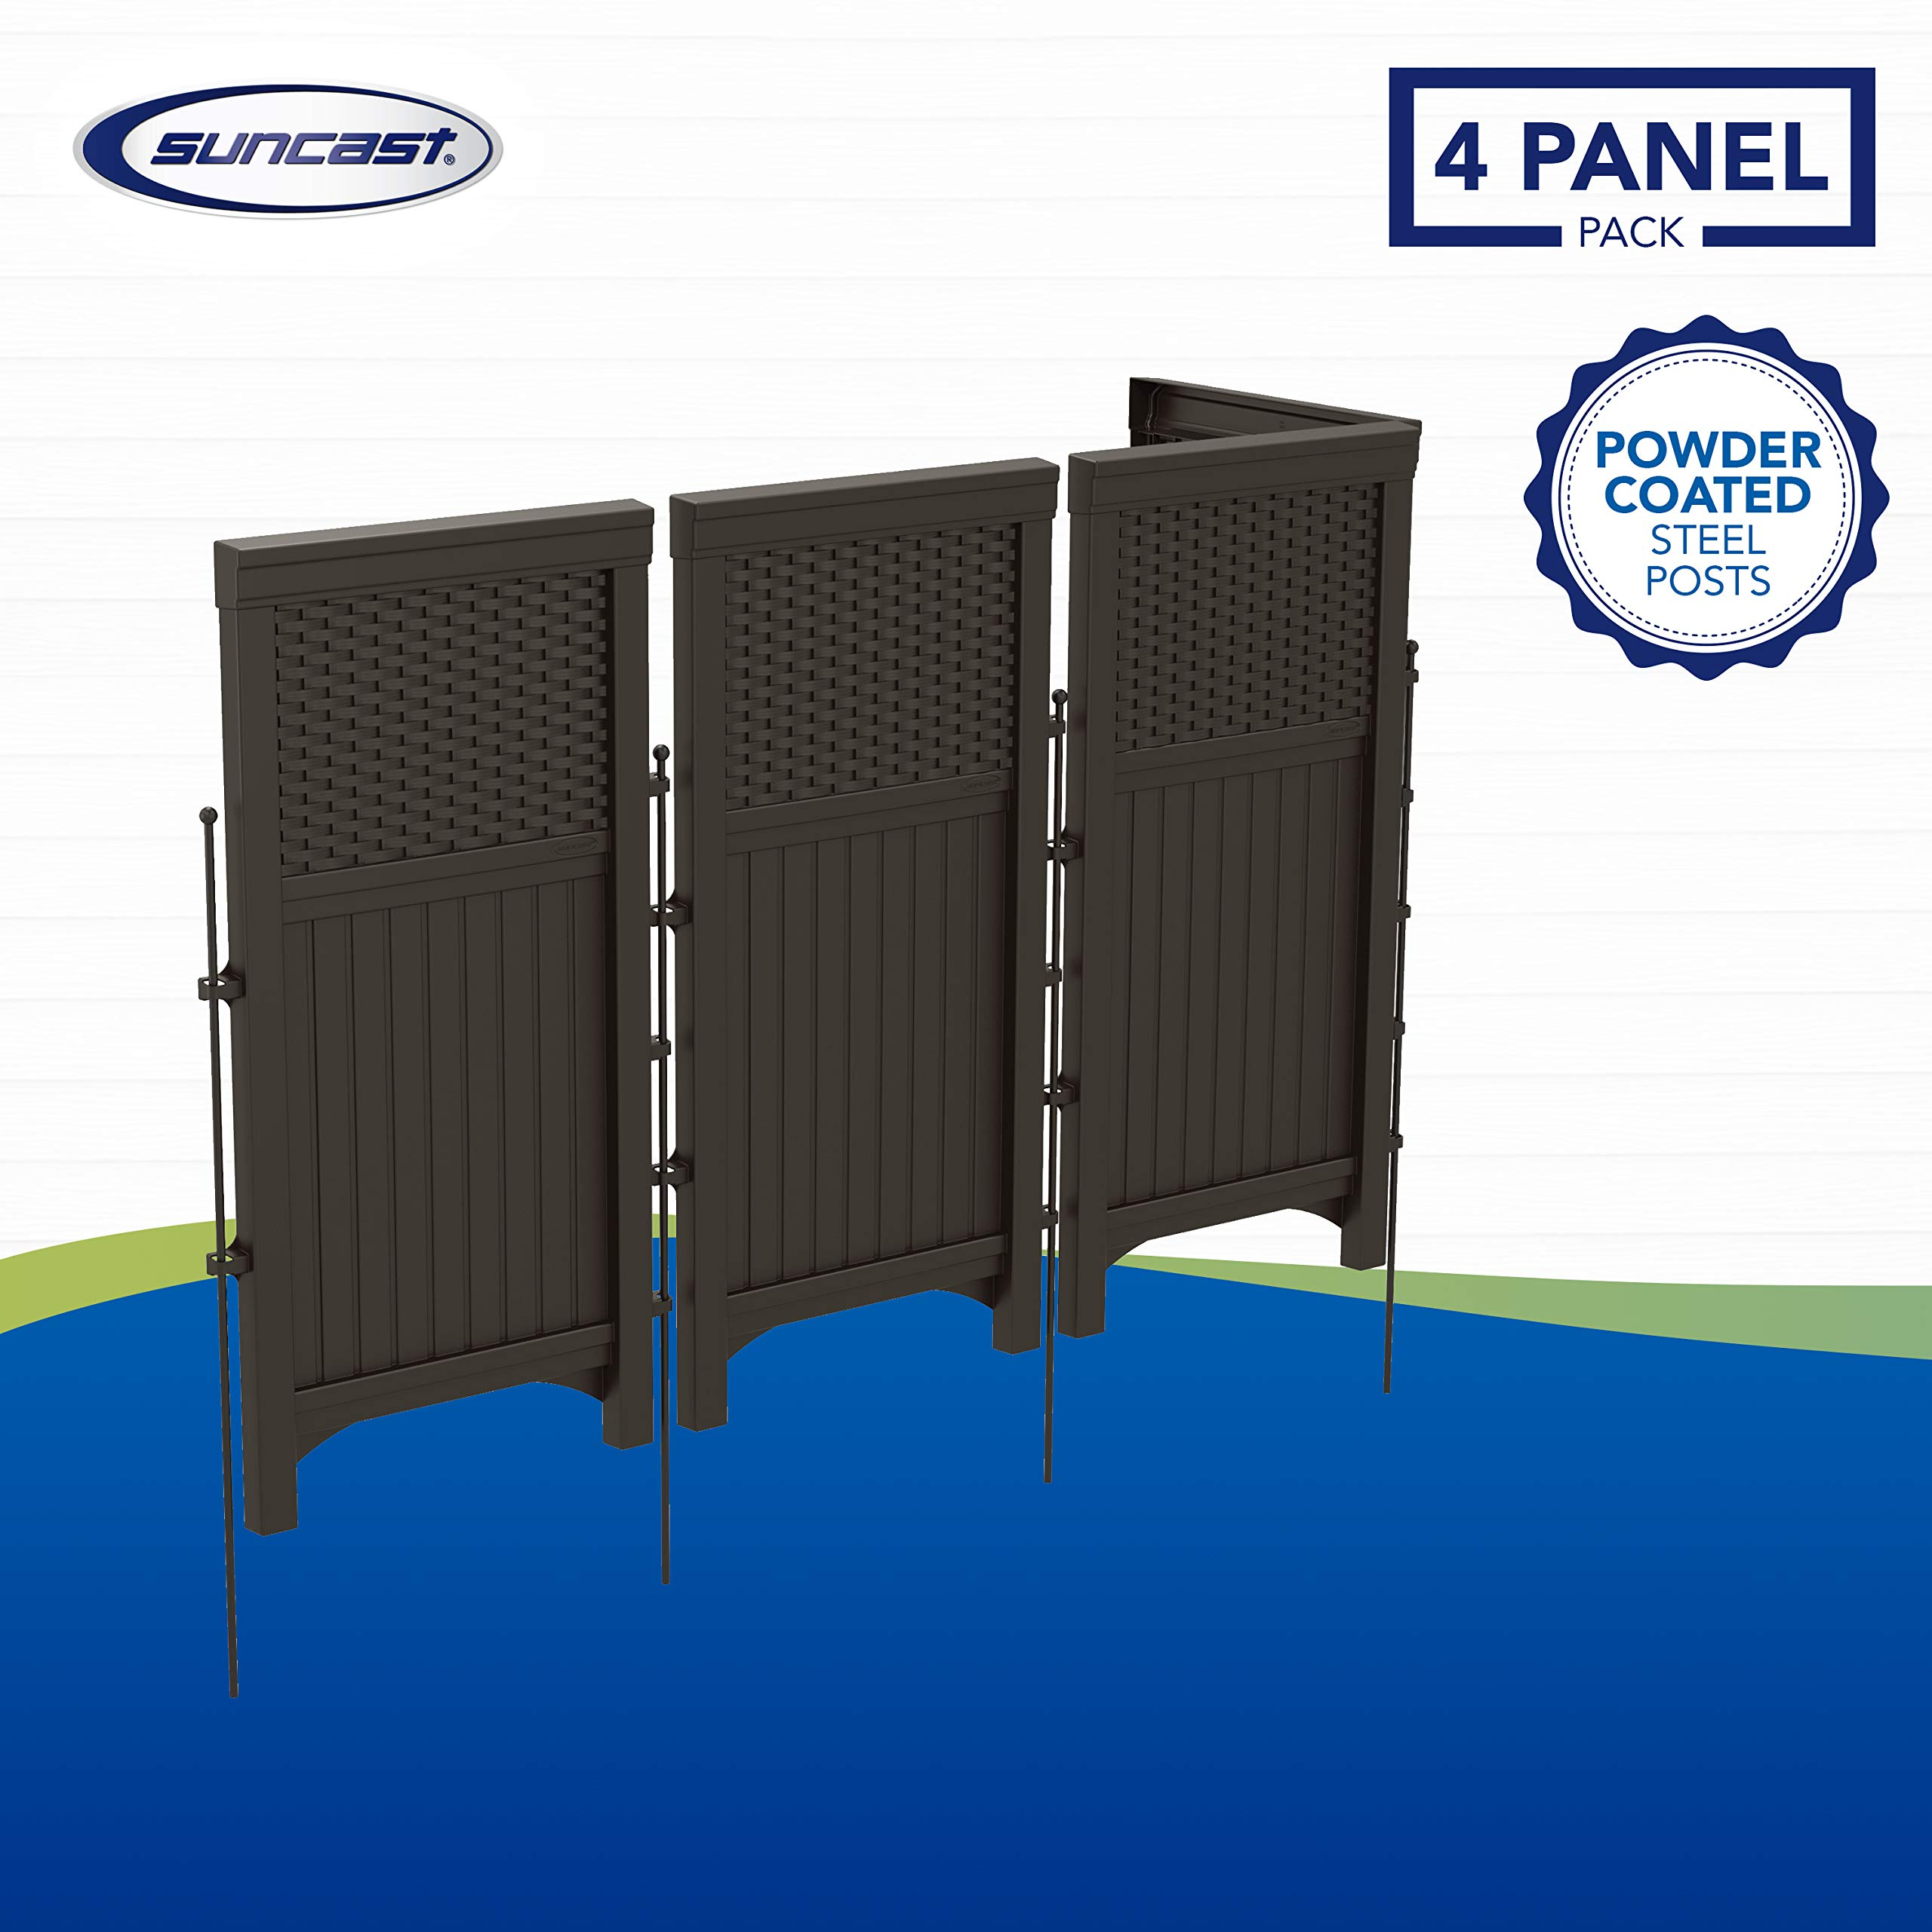 Suncast FSW4423 4 Panel Resin Wicker Outdoor Screen: Amazon.es: Jardín